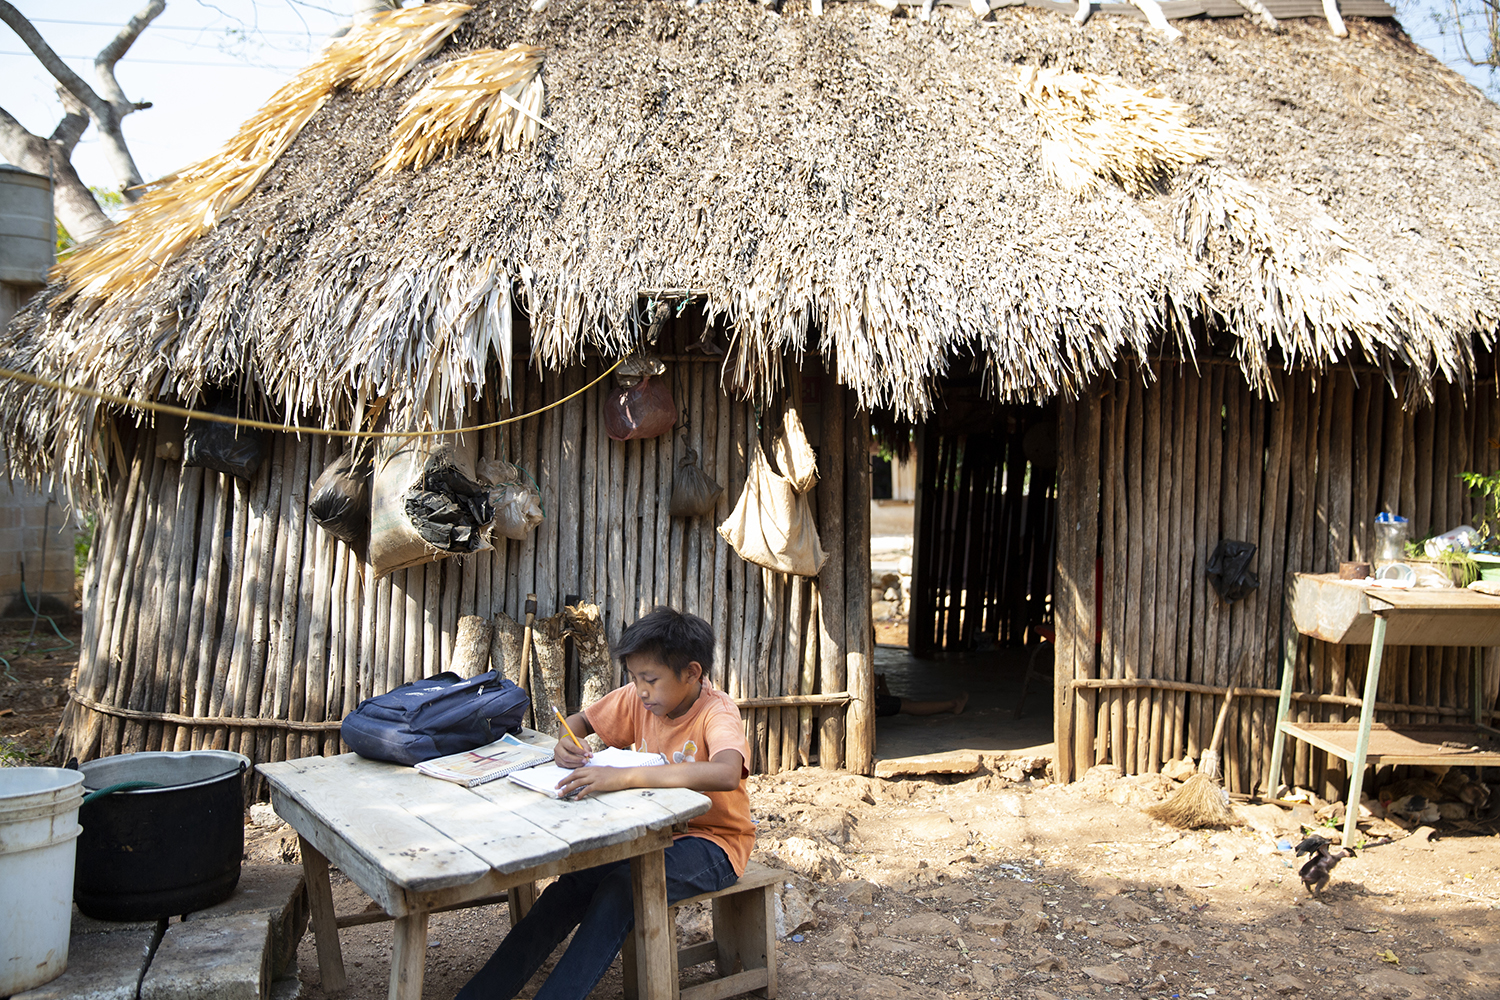 Rodrigo Tuz Díaz, 11, a student at the Ignacio Ramírez Calzada primary school, works on his schoolwork at his home in the Indigenous community of Celtún, Yucatán state, Mexico, on May 3, as schools remain closed due to the COVID-19 pandemic.